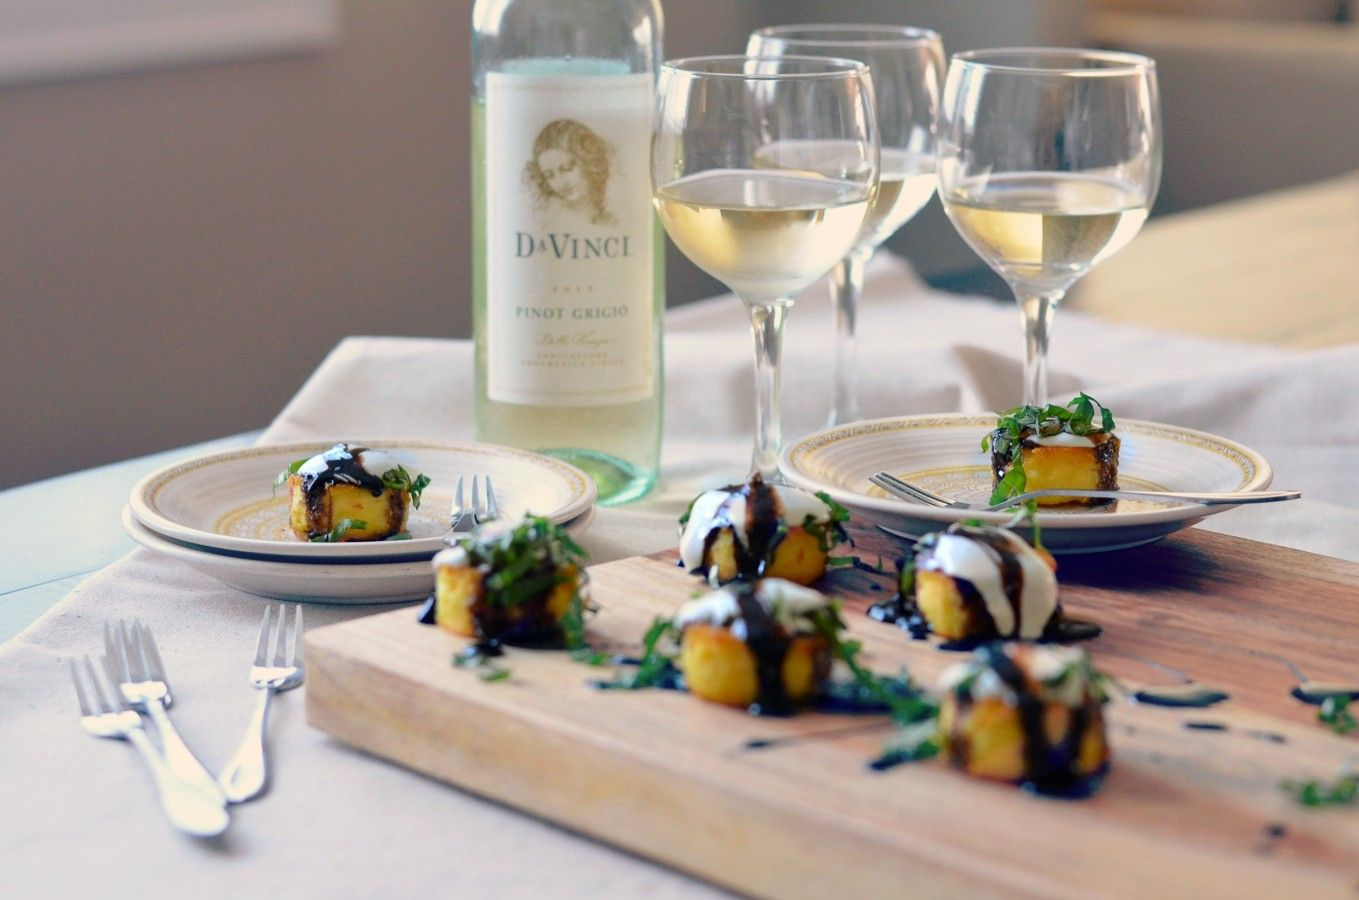 Crispy Polenta Bites with Creme Fraiche, Balsamic Glaze and Fresh Basil with DaVinci Pinot Grigio